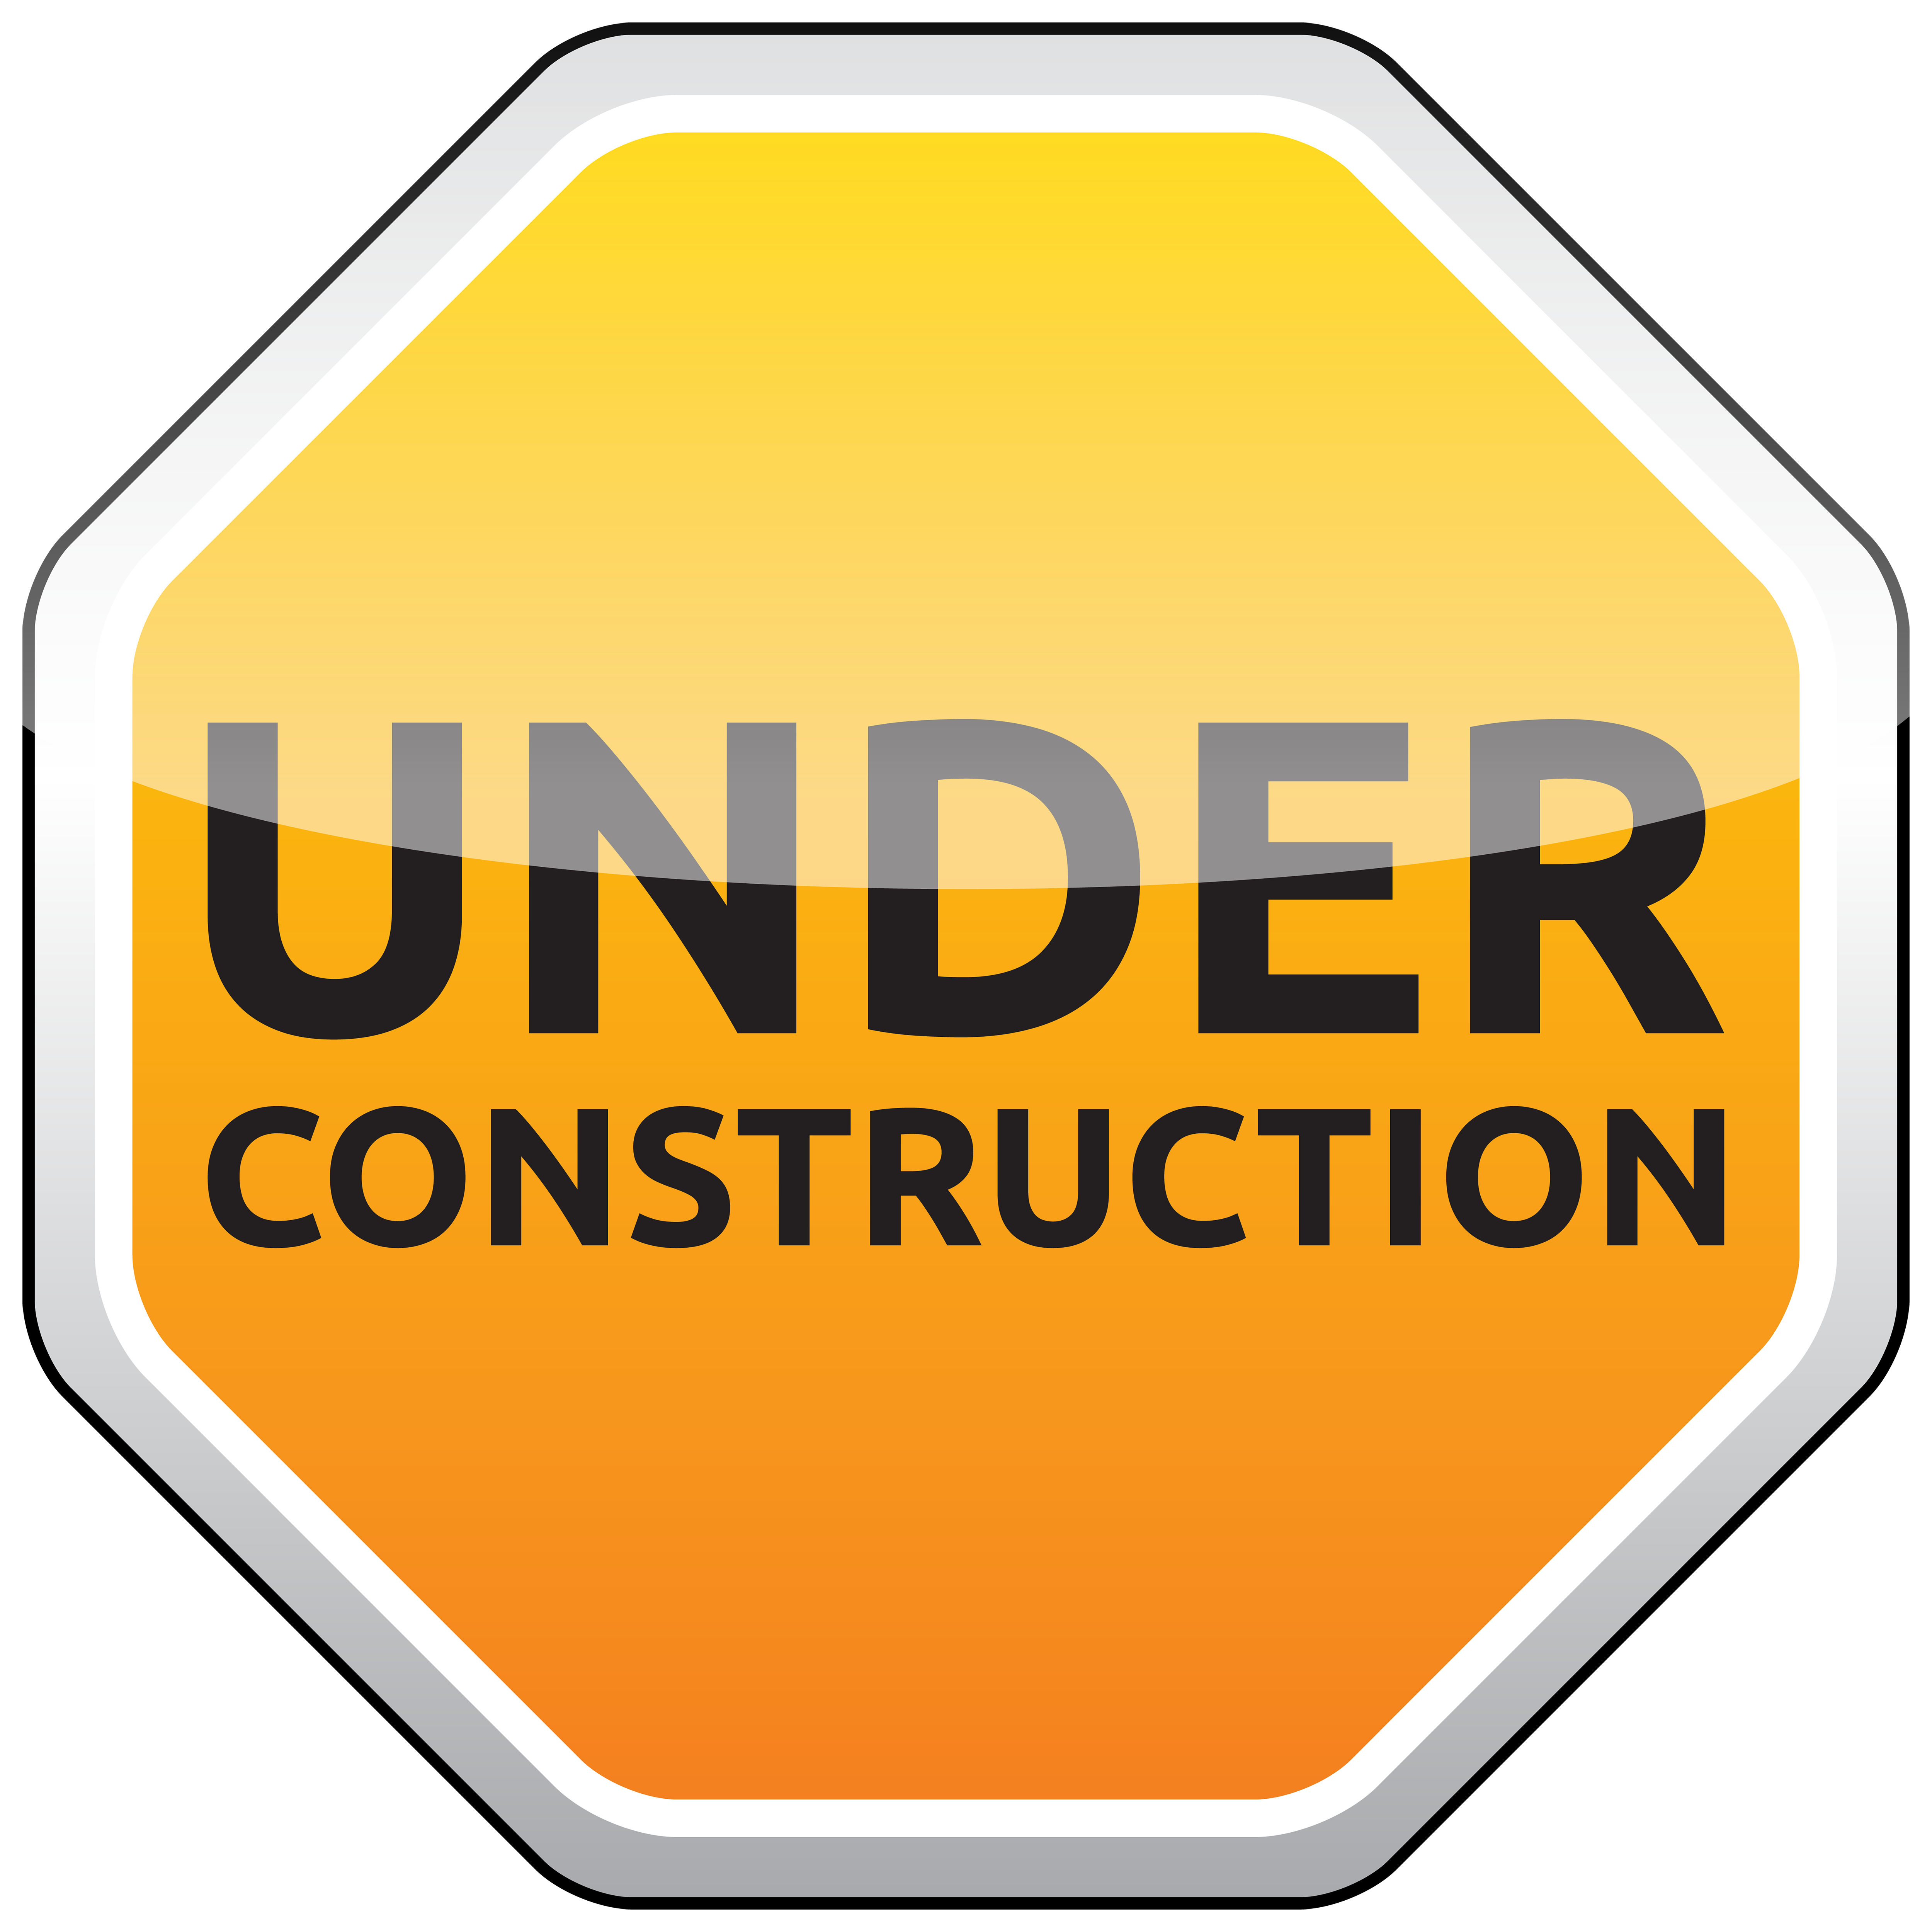 Under Construction Png - Under Construction Sign PNG Clipart